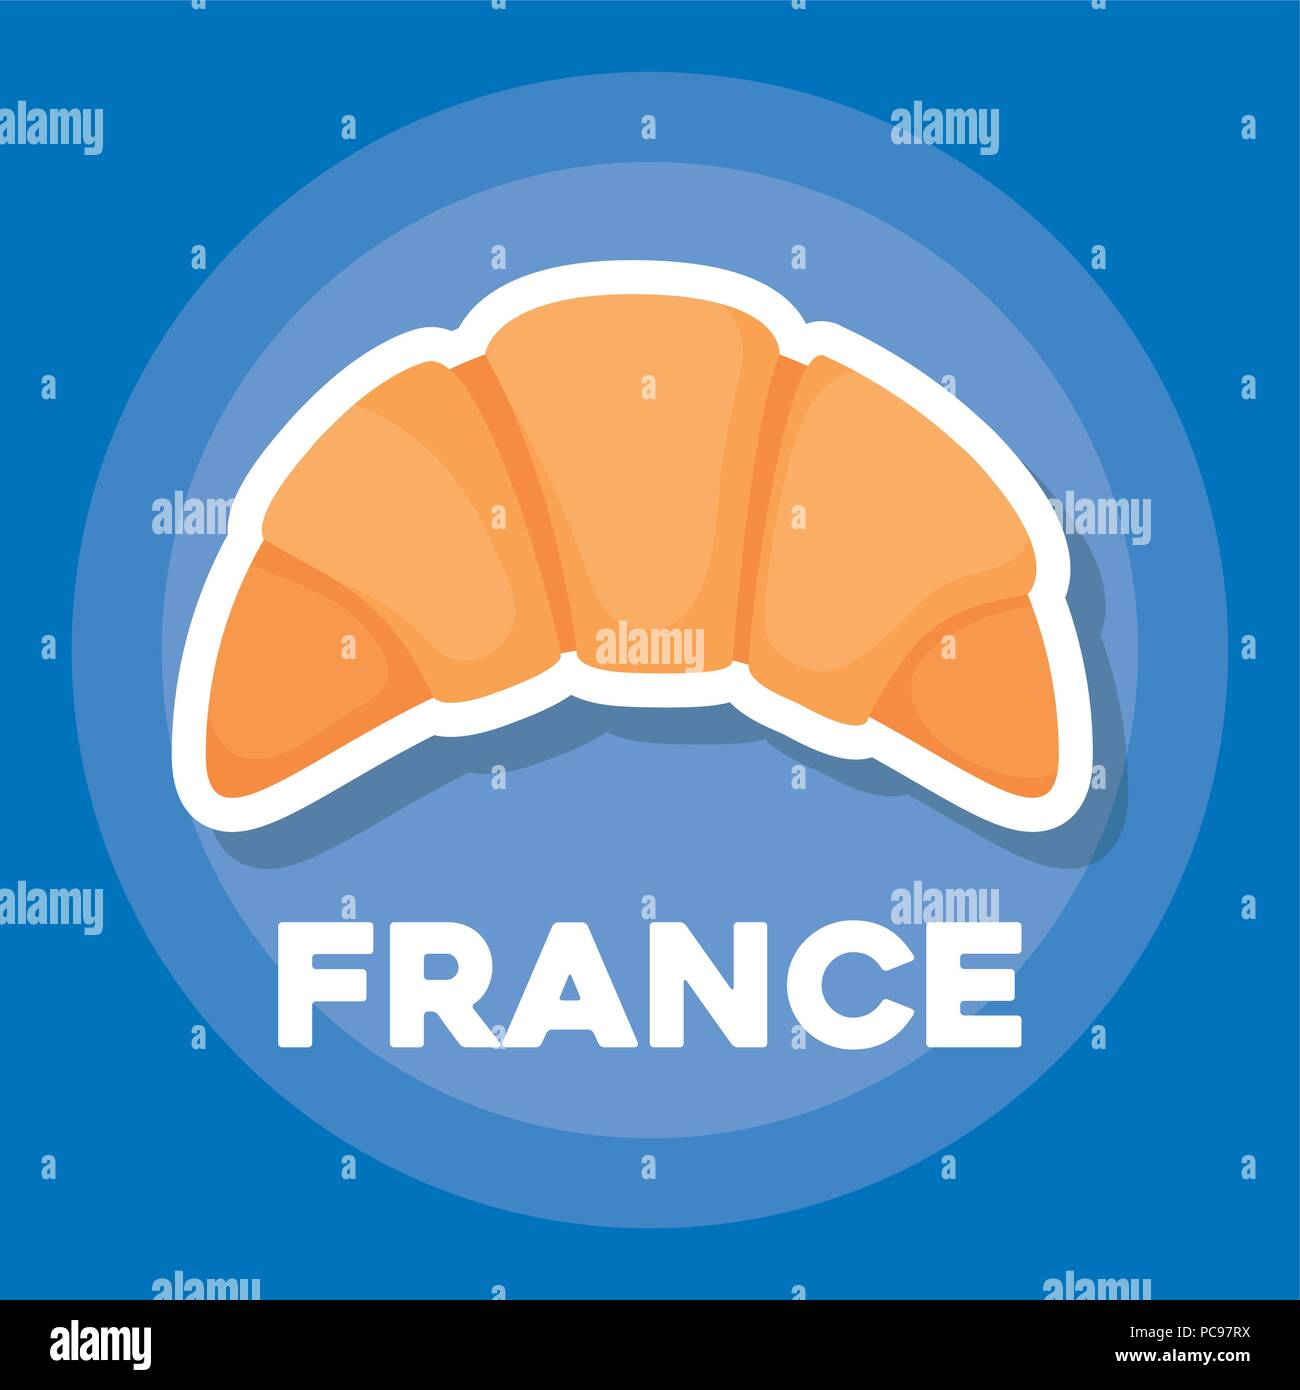 france culture design with croissant icon over blue background, colorful design. vector illustration - Stock Image